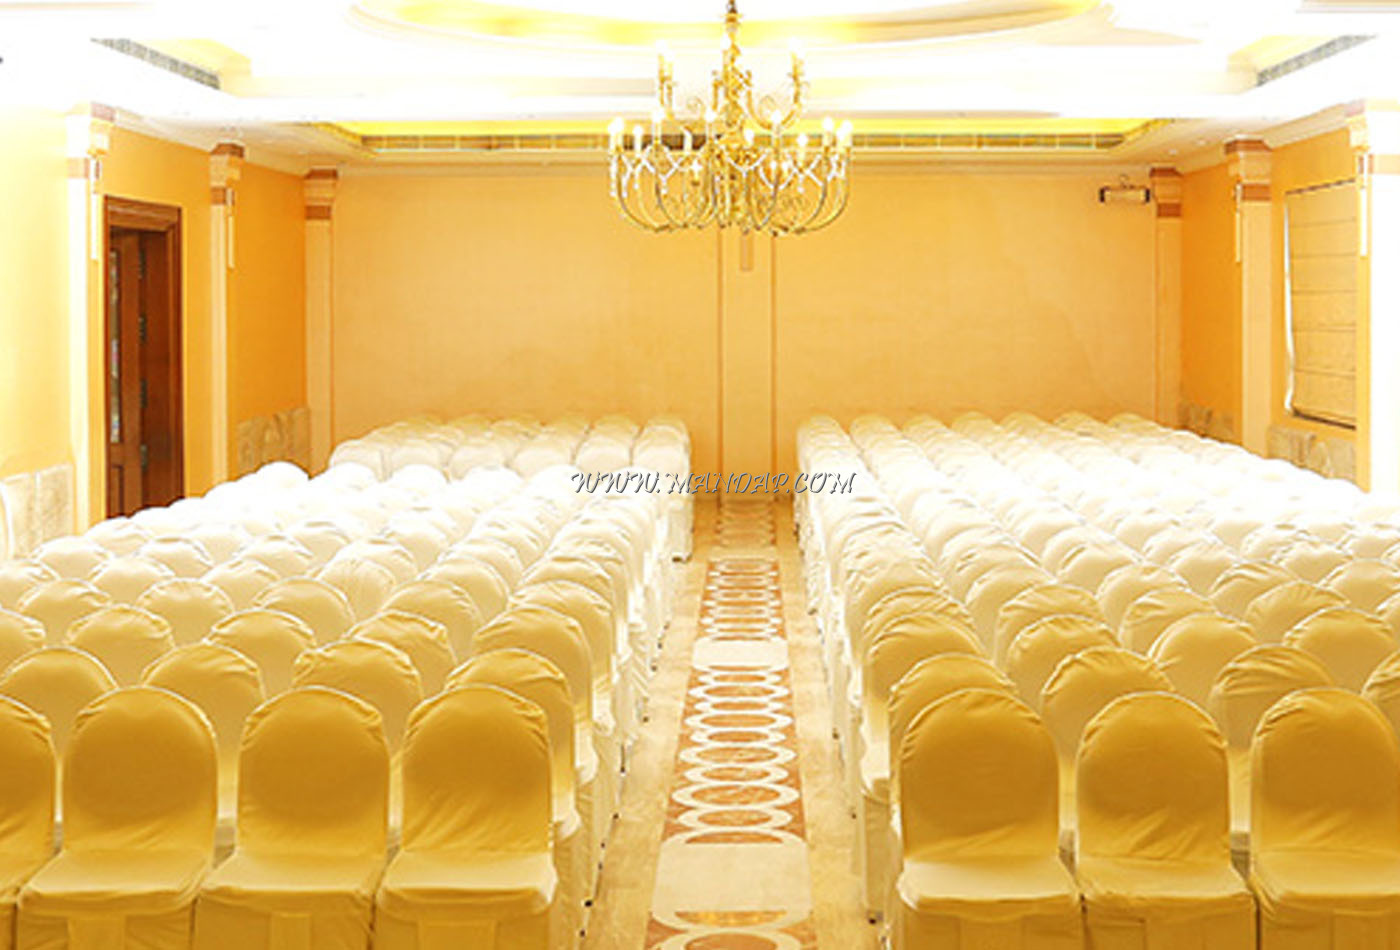 Find the availability of the Hotel Surguru Lotus Hall (A/C) in Thengaithittu, Pondicherry and avail special offers